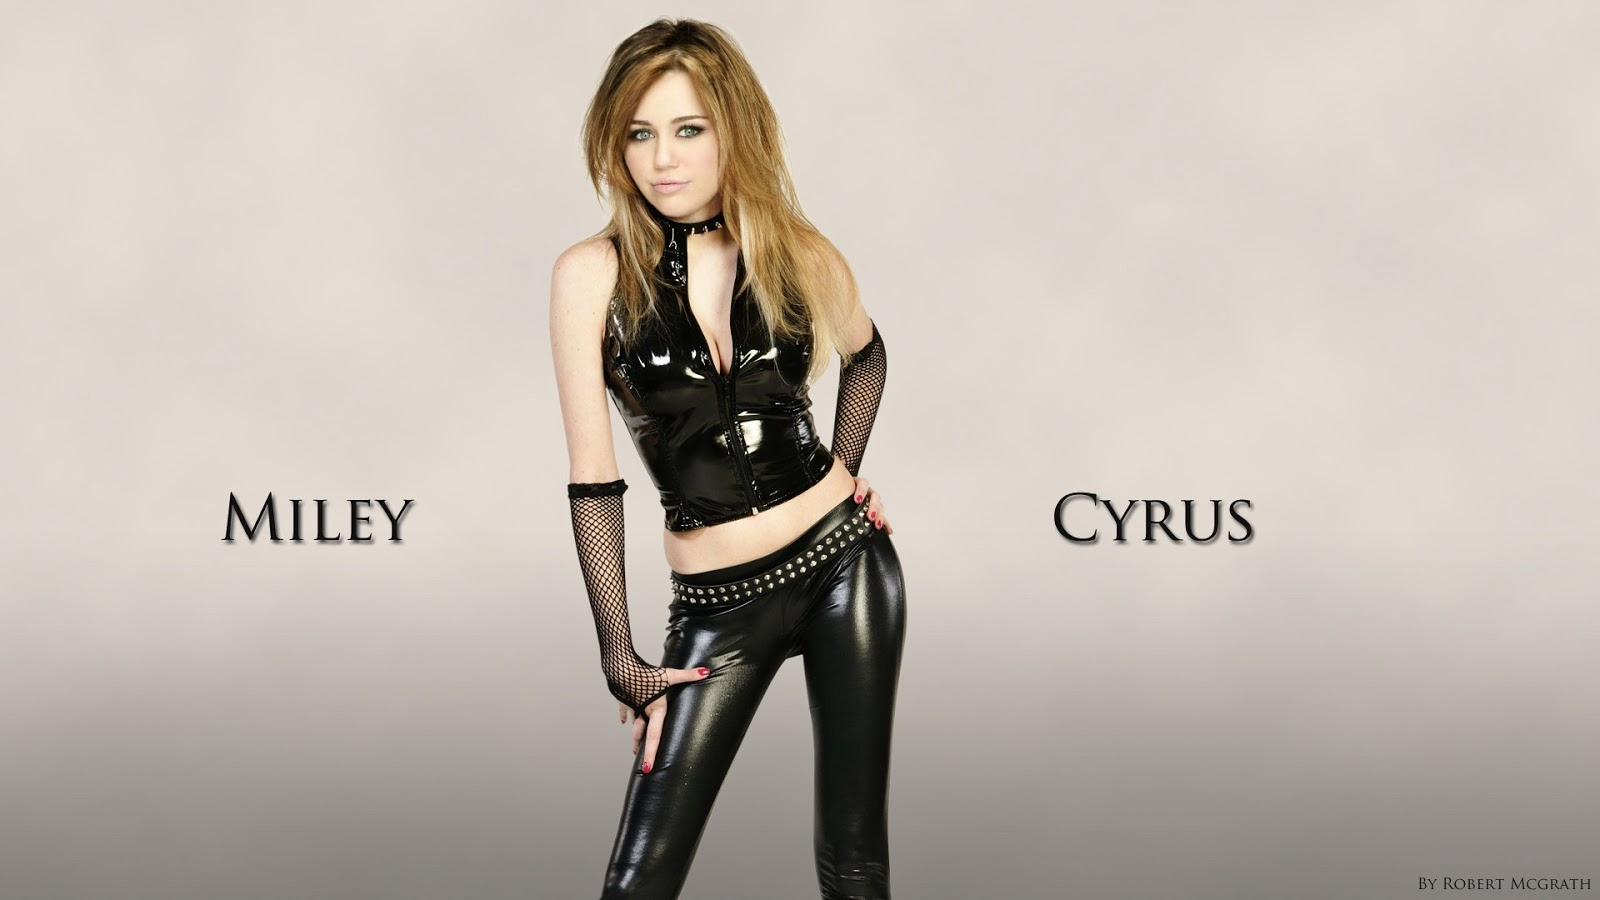 hd miley cyrus wallpapers - photo #34